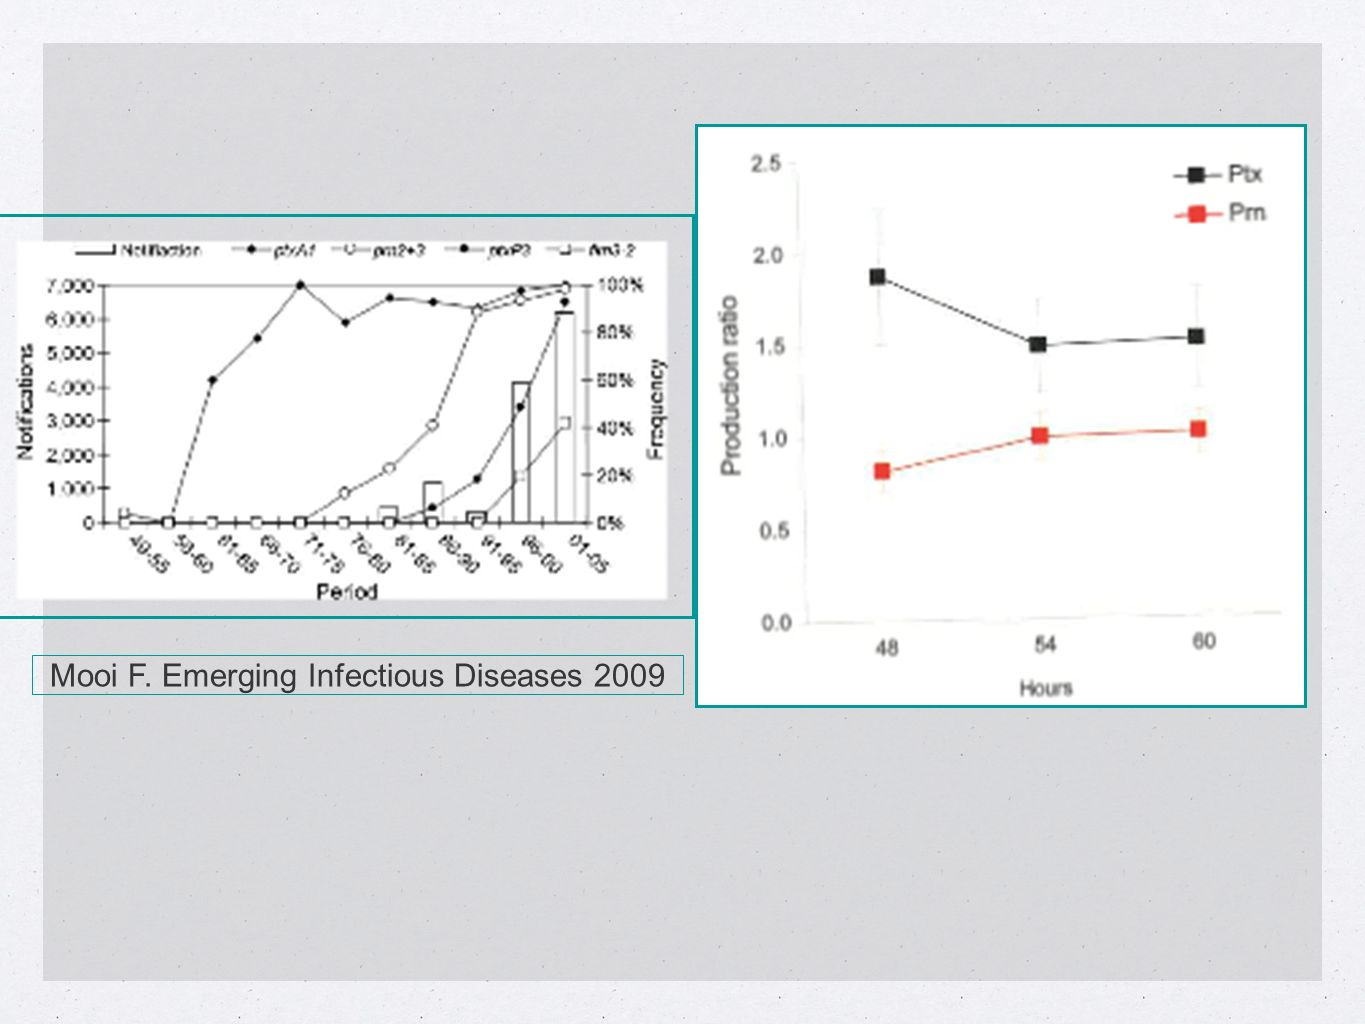 Mooi F. Emerging Infectious Diseases 2009